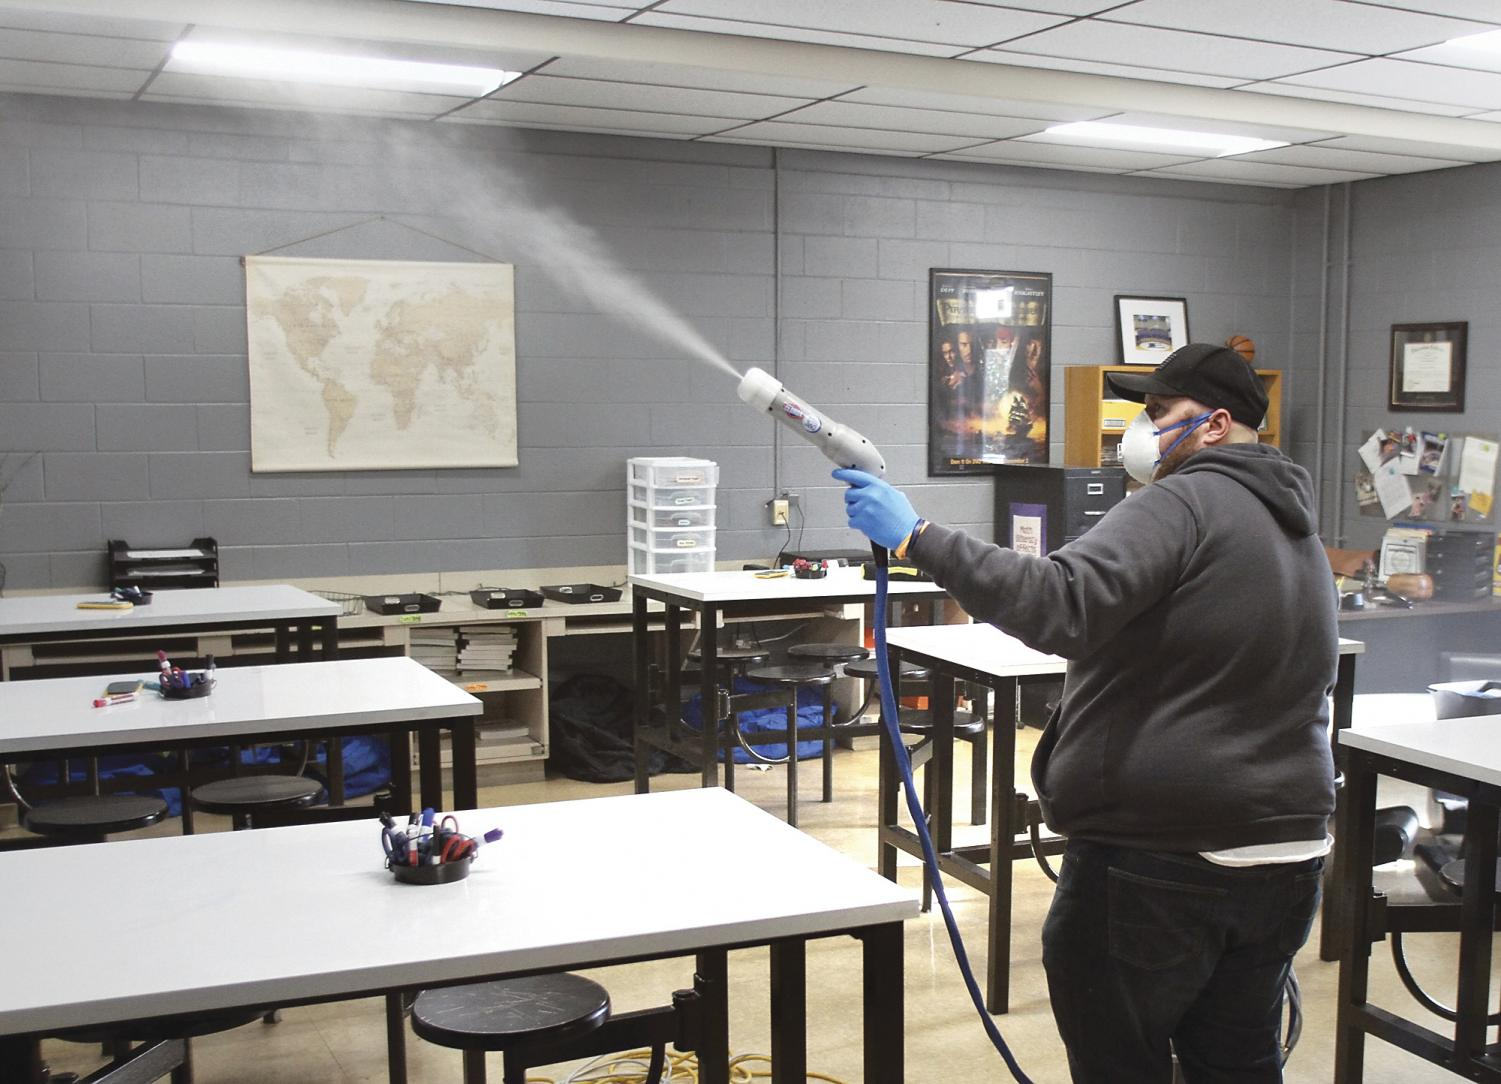 In this Wednesday, Jan. 22, 2020 photo, head custodian Bubba McKenzie uses the Clorox Total 360 System to sanitize a classroom at Eagleton Middle School in Maryville, Tenn. The electrostatics sprayer creates a fine mist that reaches more surfaces faster than traditional cleaning. Blount County Schools have four of the machines for its 21 schools. (Tom Sherlin/The Daily Times via AP)